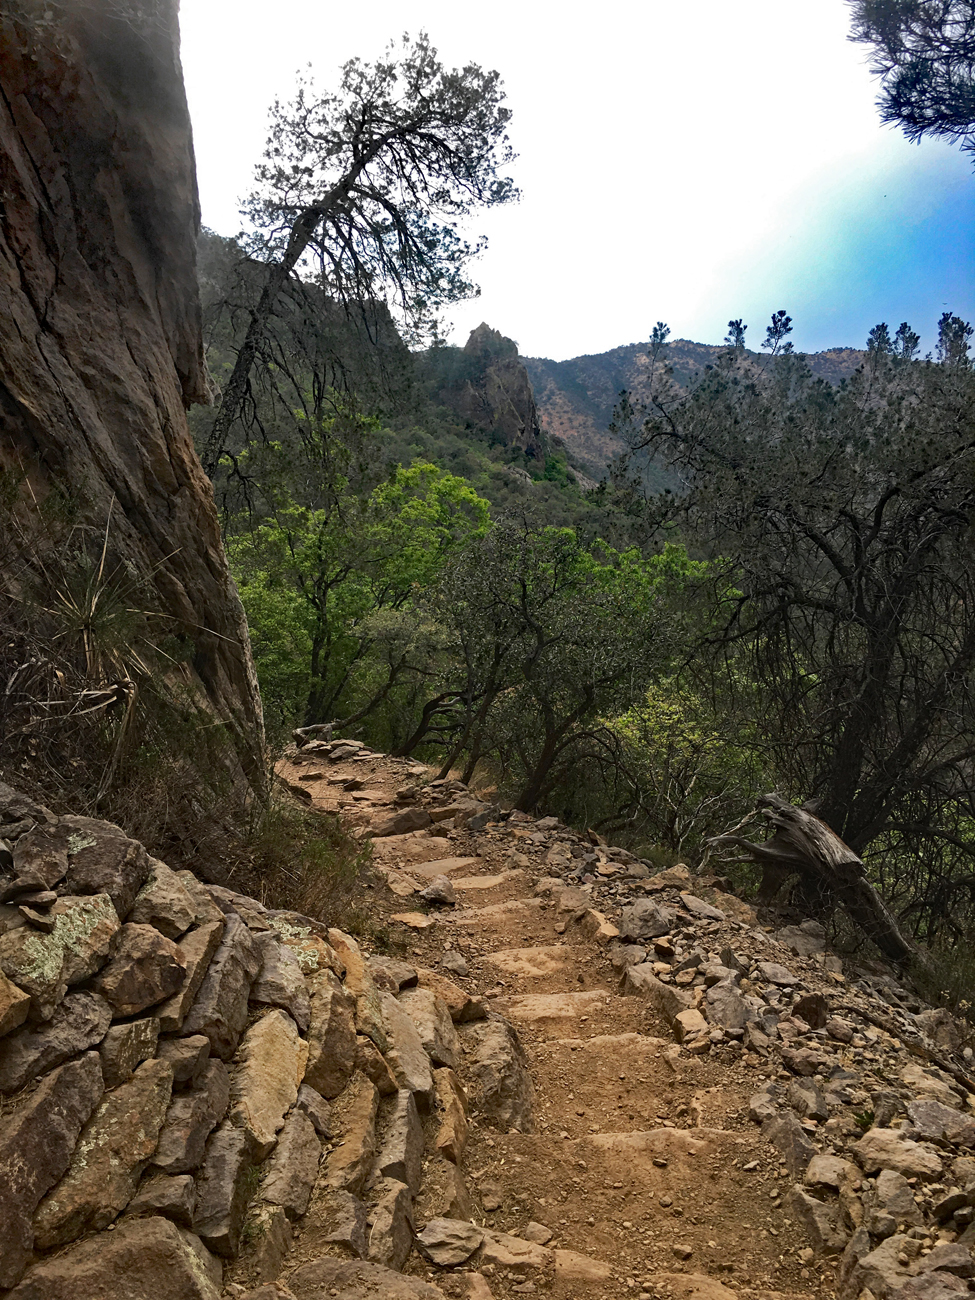 Switchbacks of the Pinnacles Trail as it climbs into the forest in Big Bend National Park